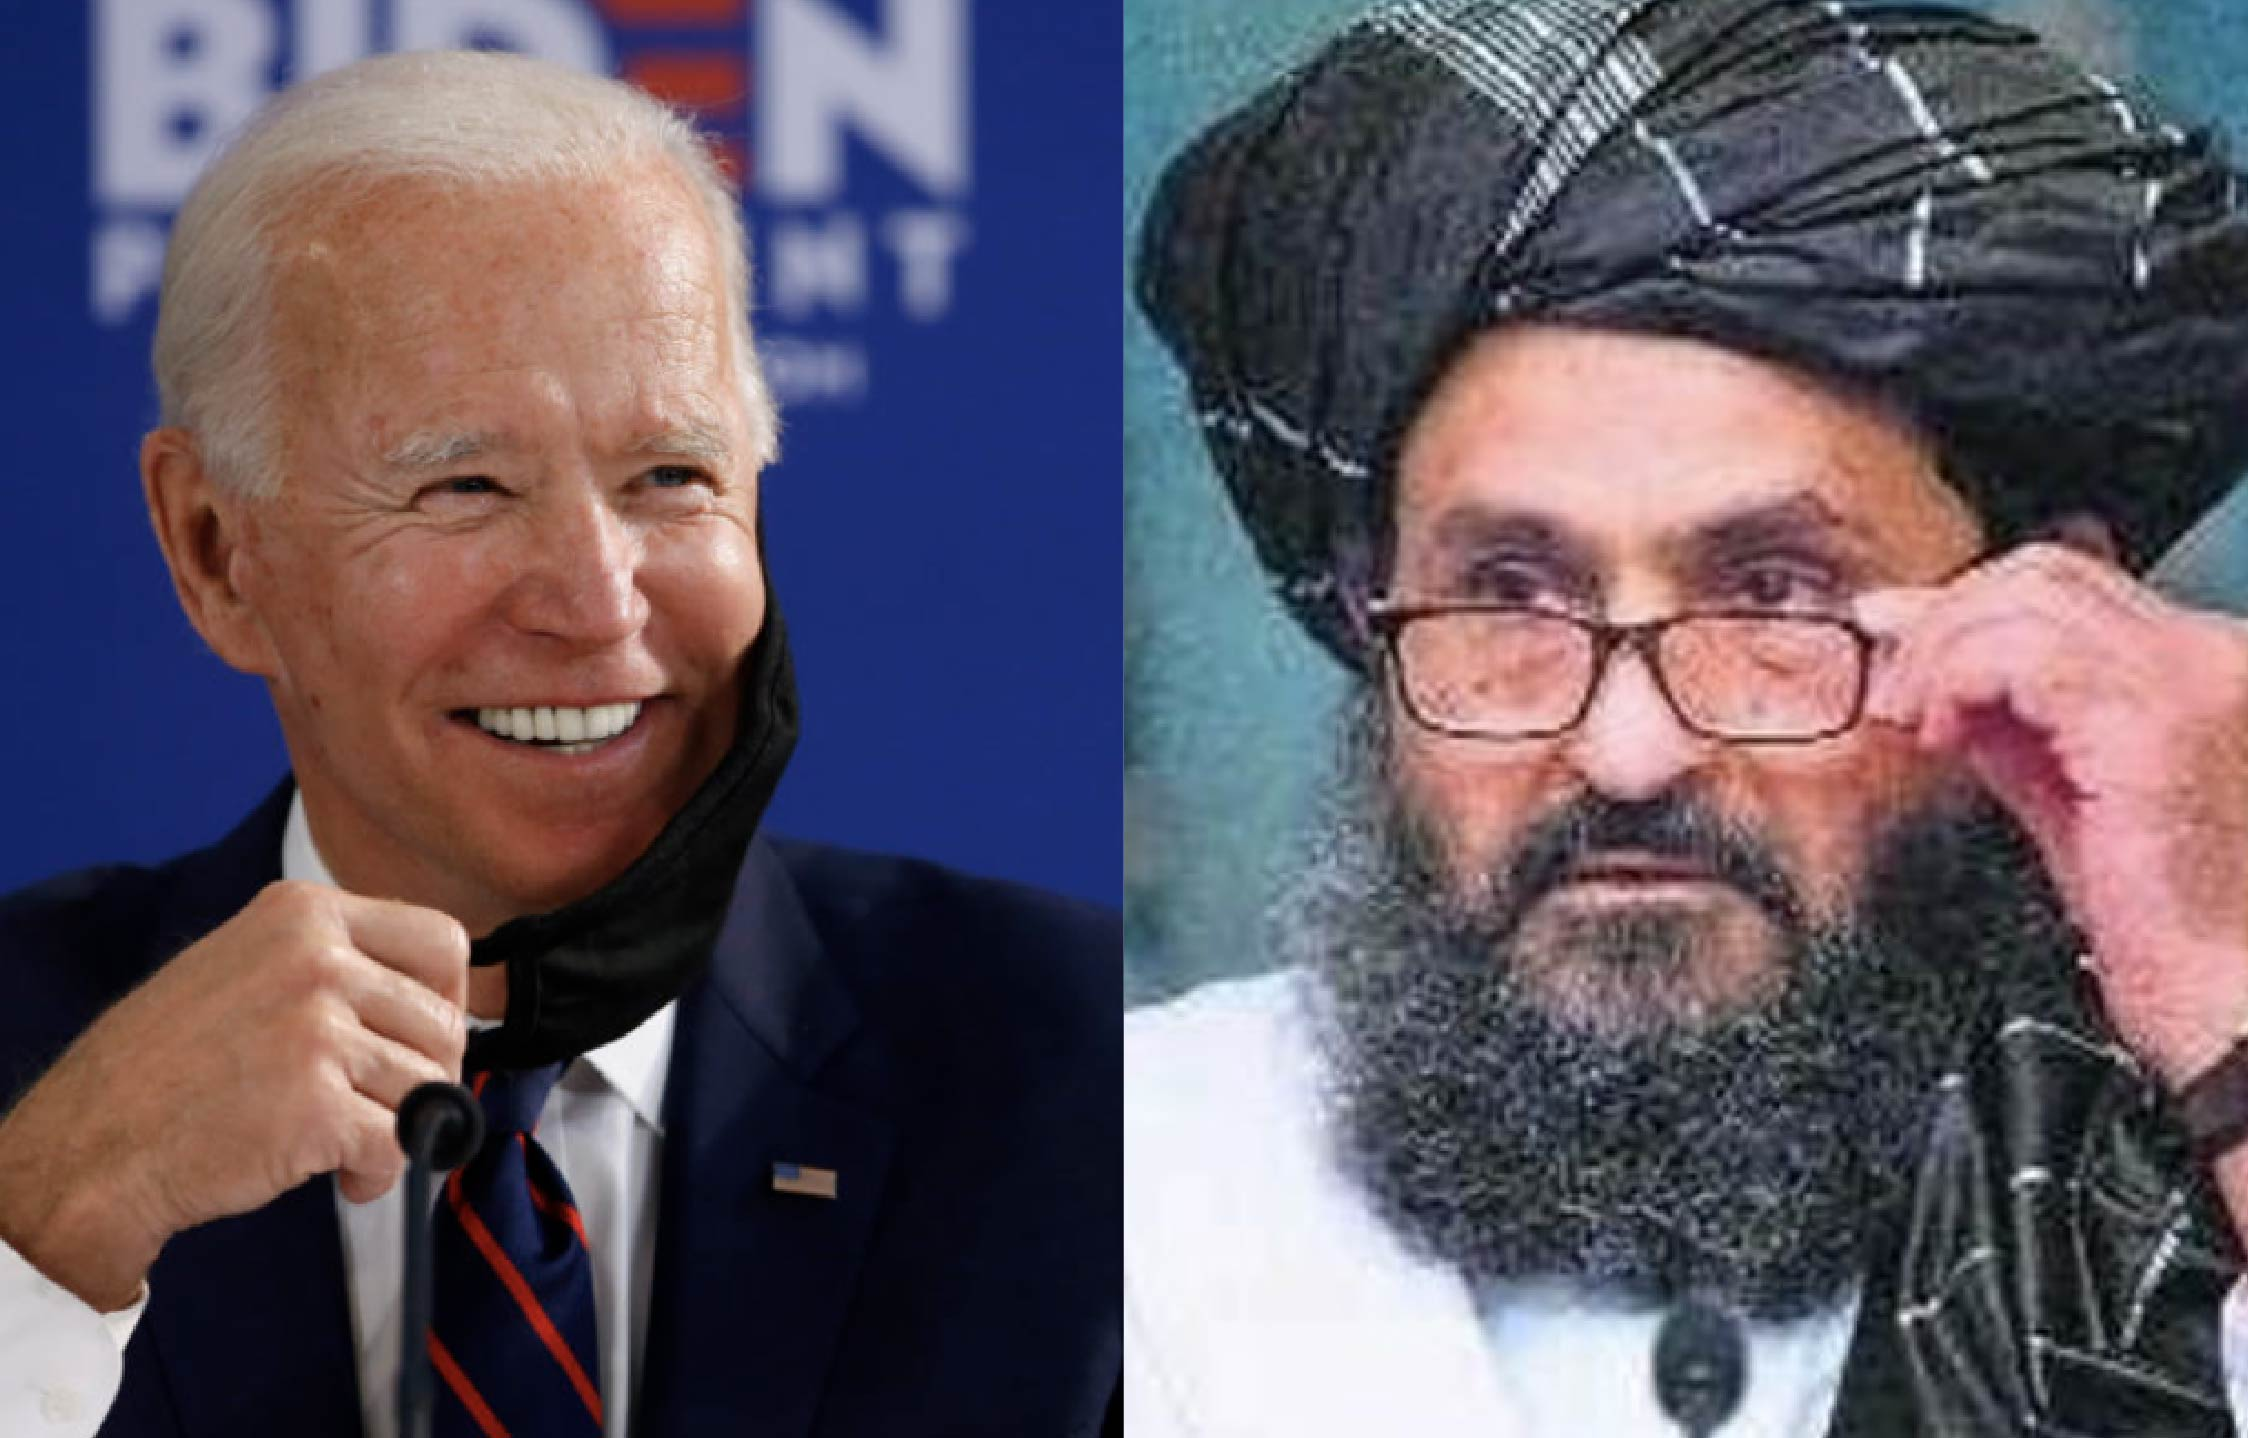 """Randy Quaid Just Made The Best Observation About Biden and His """"Trusted"""" Taliban Friends in Viral Tweet"""